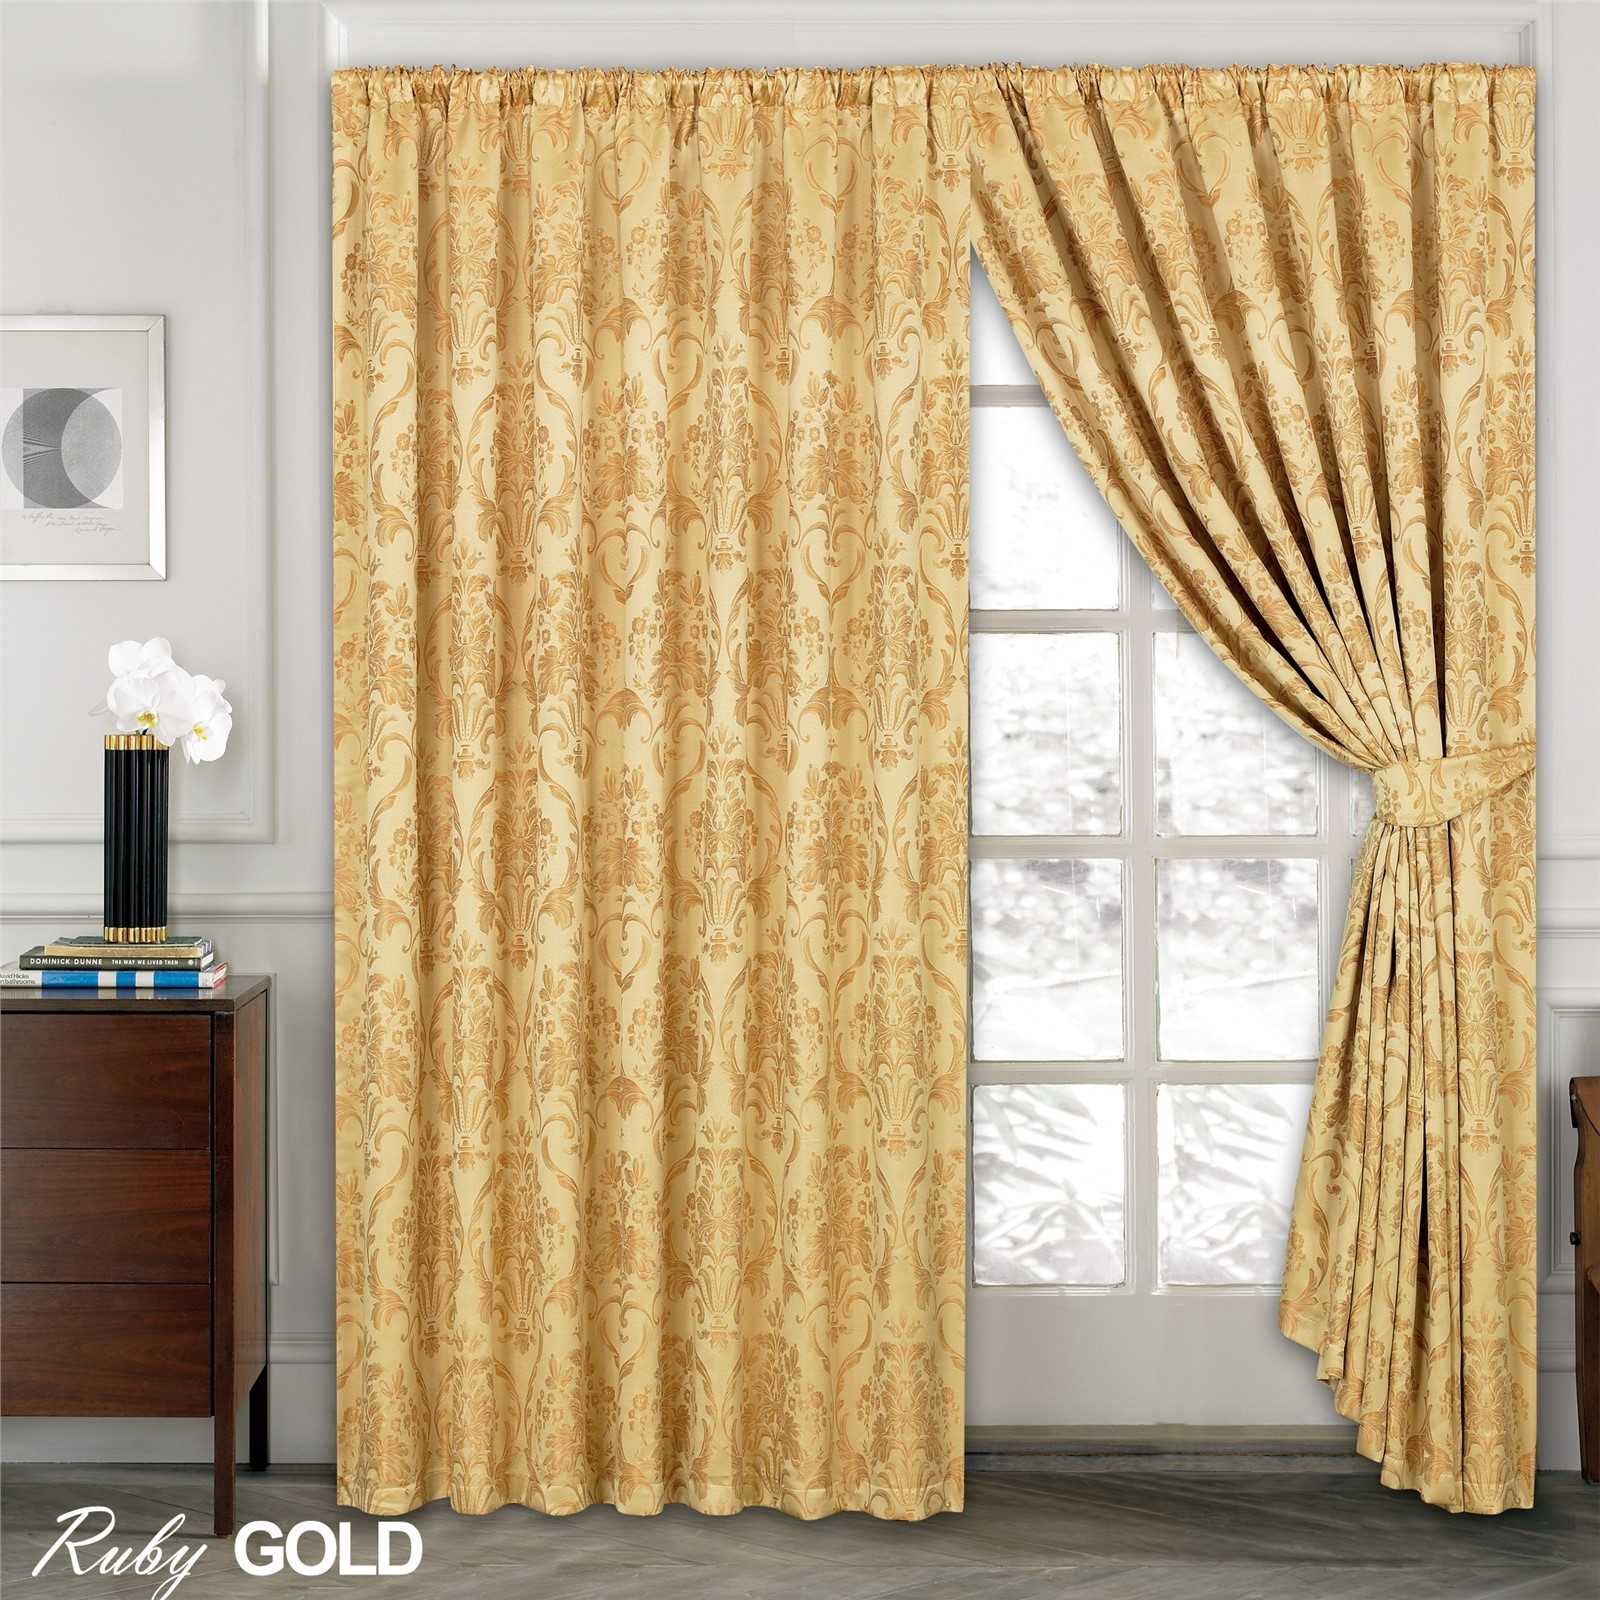 Luxury Jacquard Curtains Fully Lined Ready Made Tape Top Pencil Throughout Pencil Pleat Curtains (Image 7 of 15)